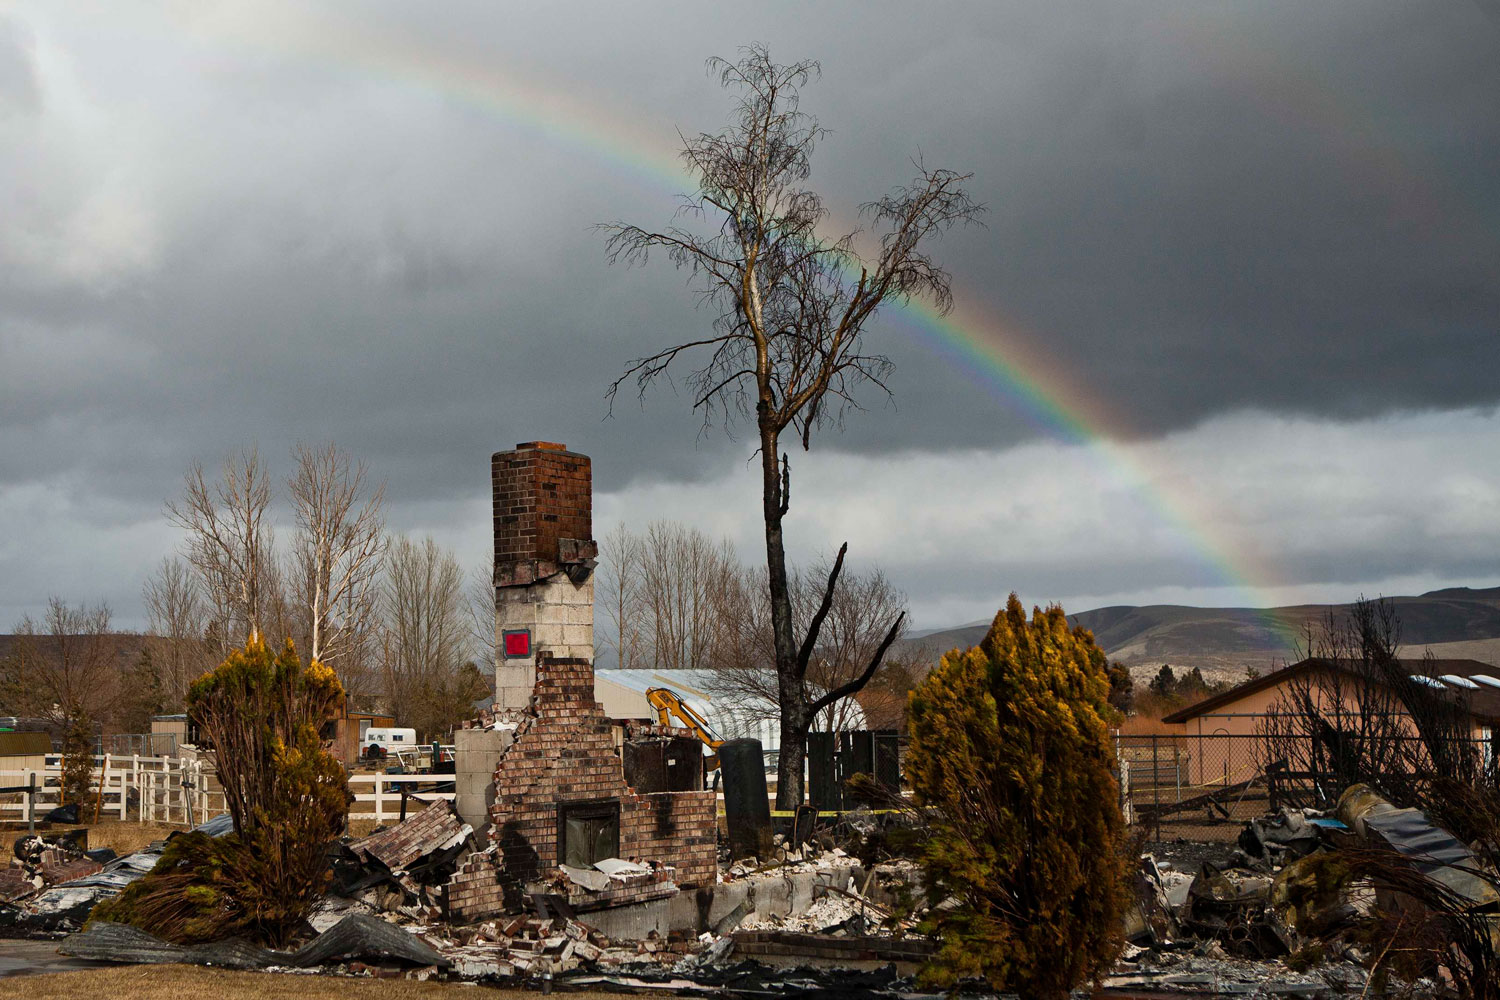 Strategies for Climate Change                               A rainbow is pictured over the remains of a burned home south of Reno, Nevada, January 20, 2012. A fierce brush fire on the outskirts of northern Nevada's largest city left 26 houses in ruins.